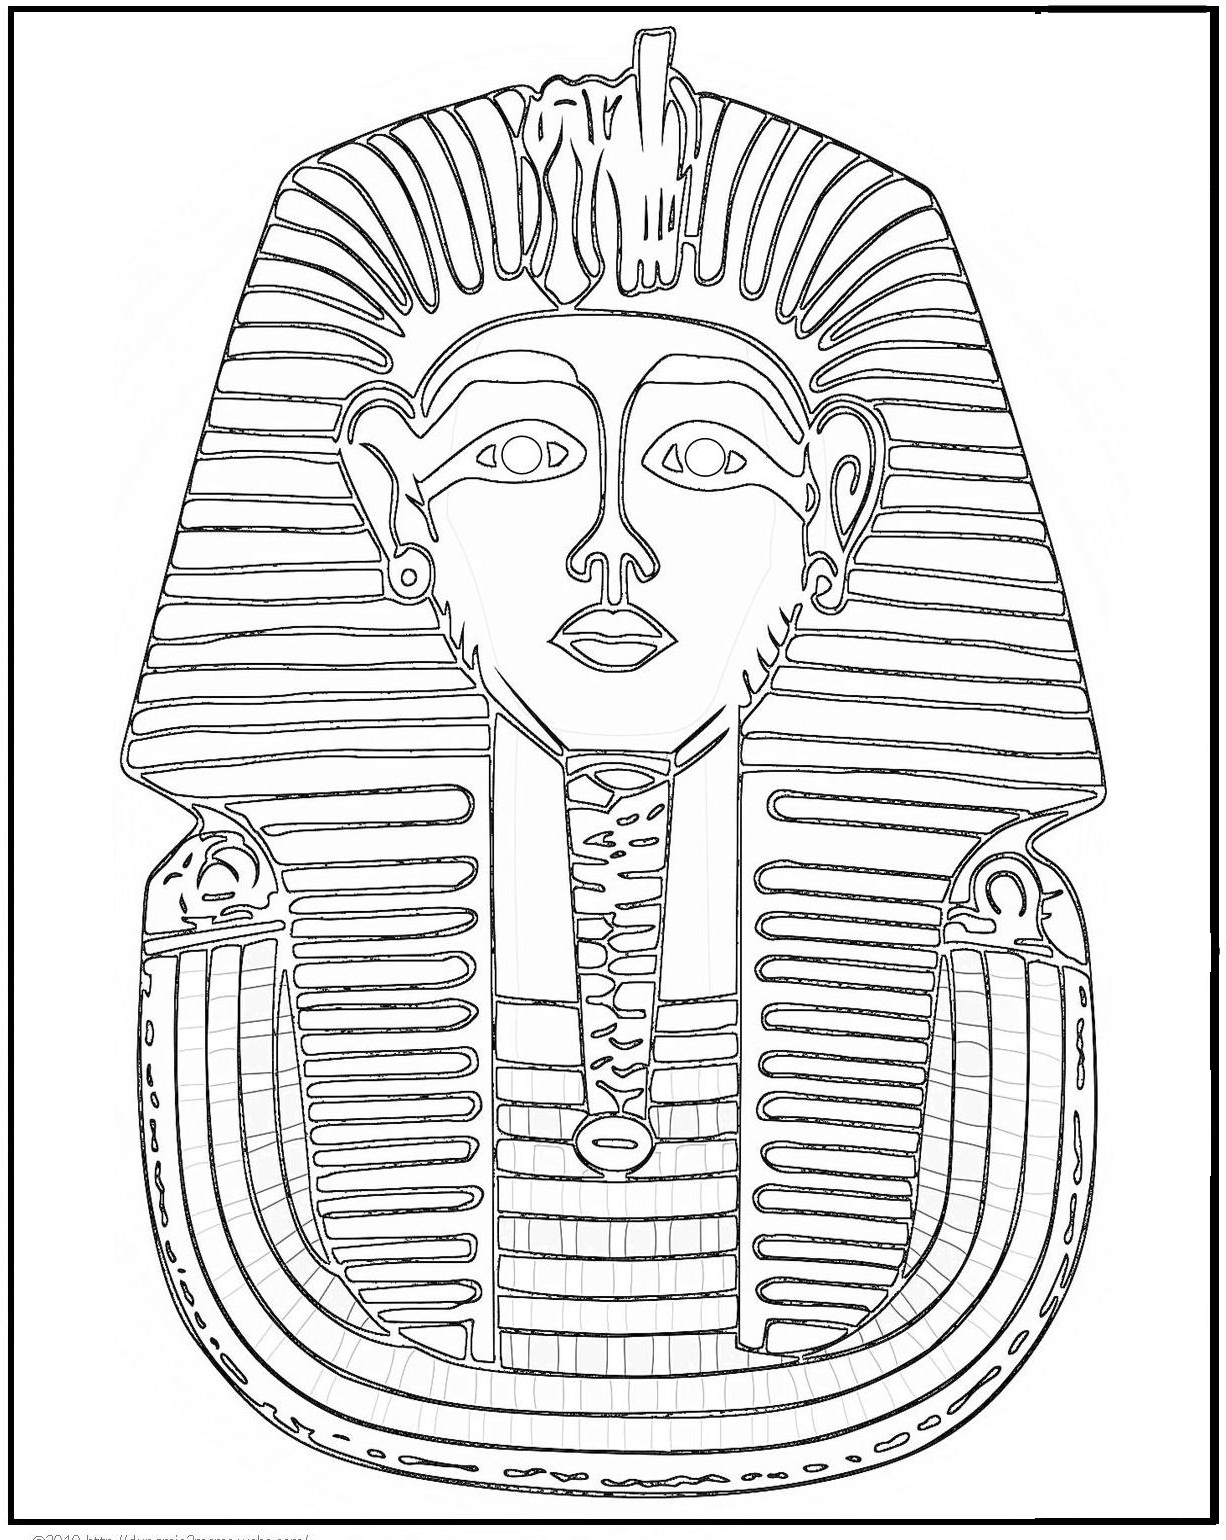 ancient egypt coloring page - Egyptian Coloring Pages Printable